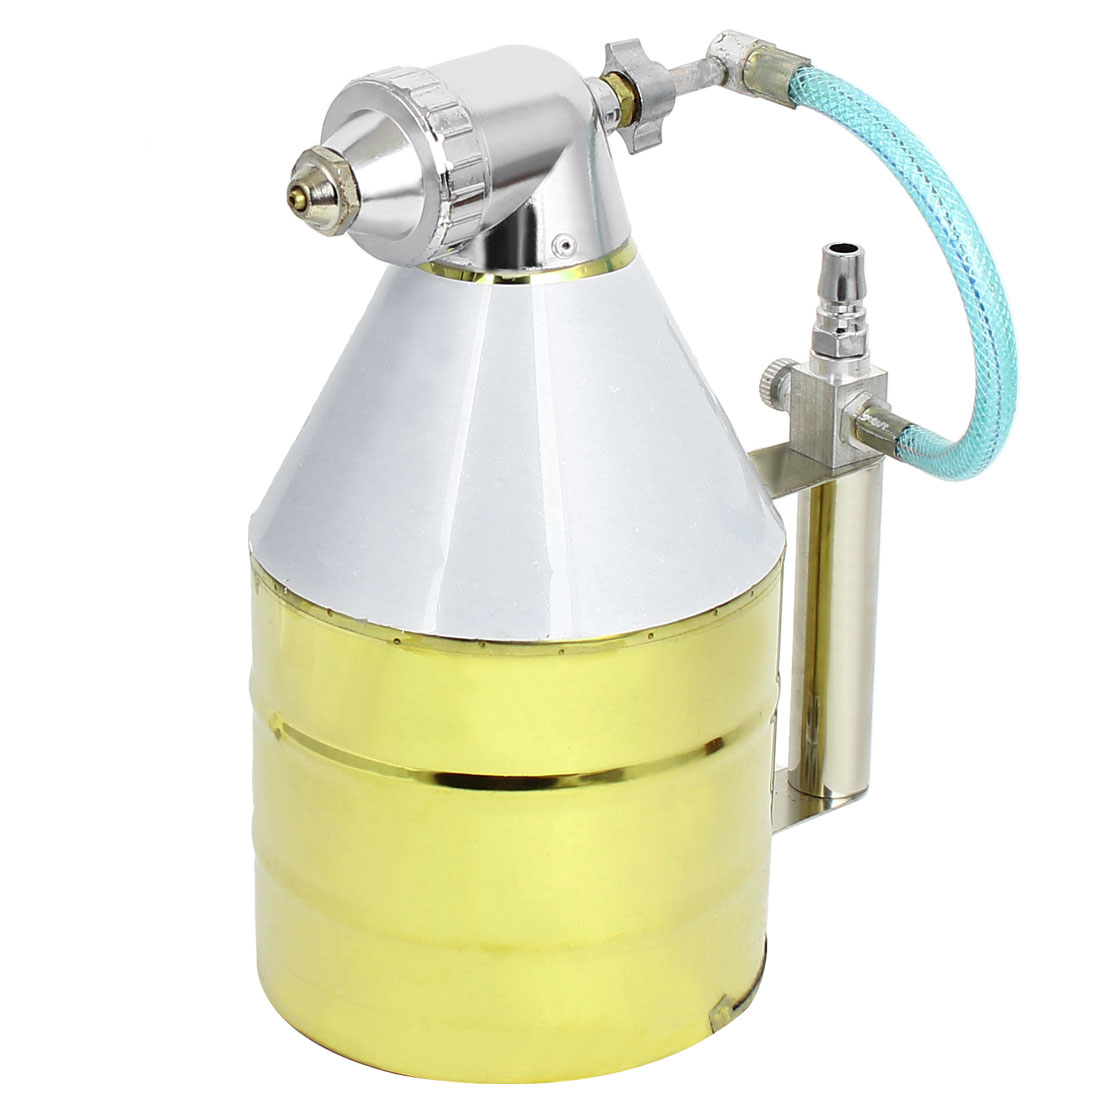 4mm Nozzle Air Hopper Spray  Painting Sprayer Tool for Wall